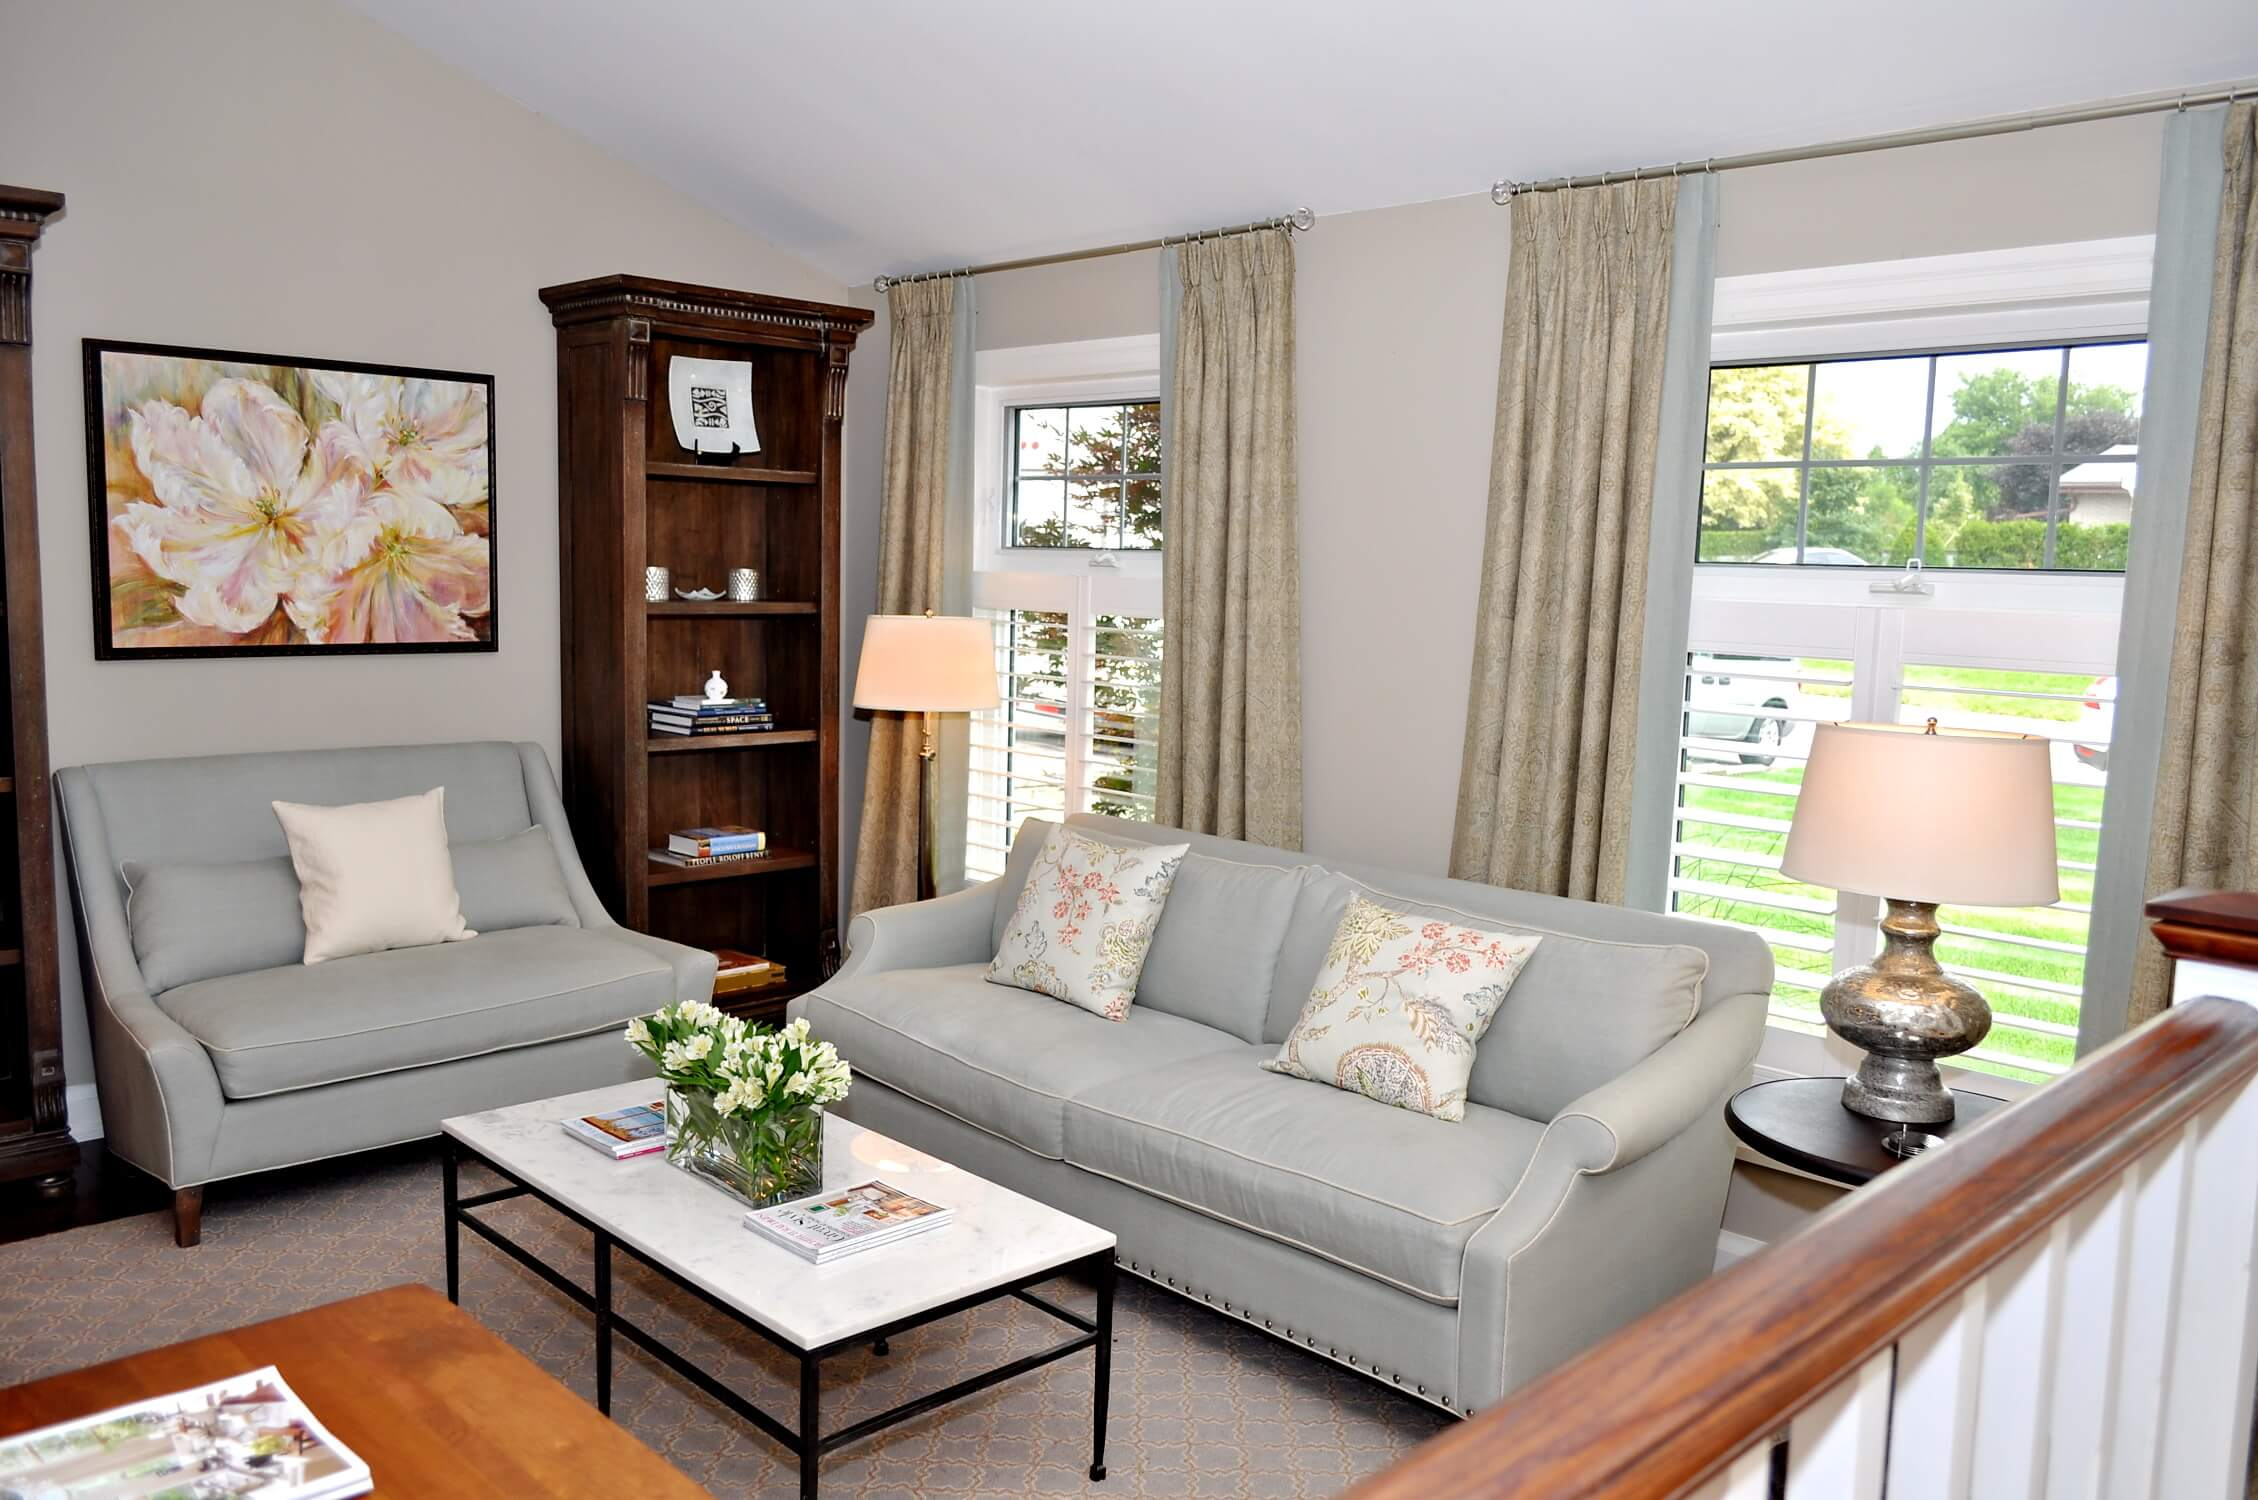 katherine b Living_Room